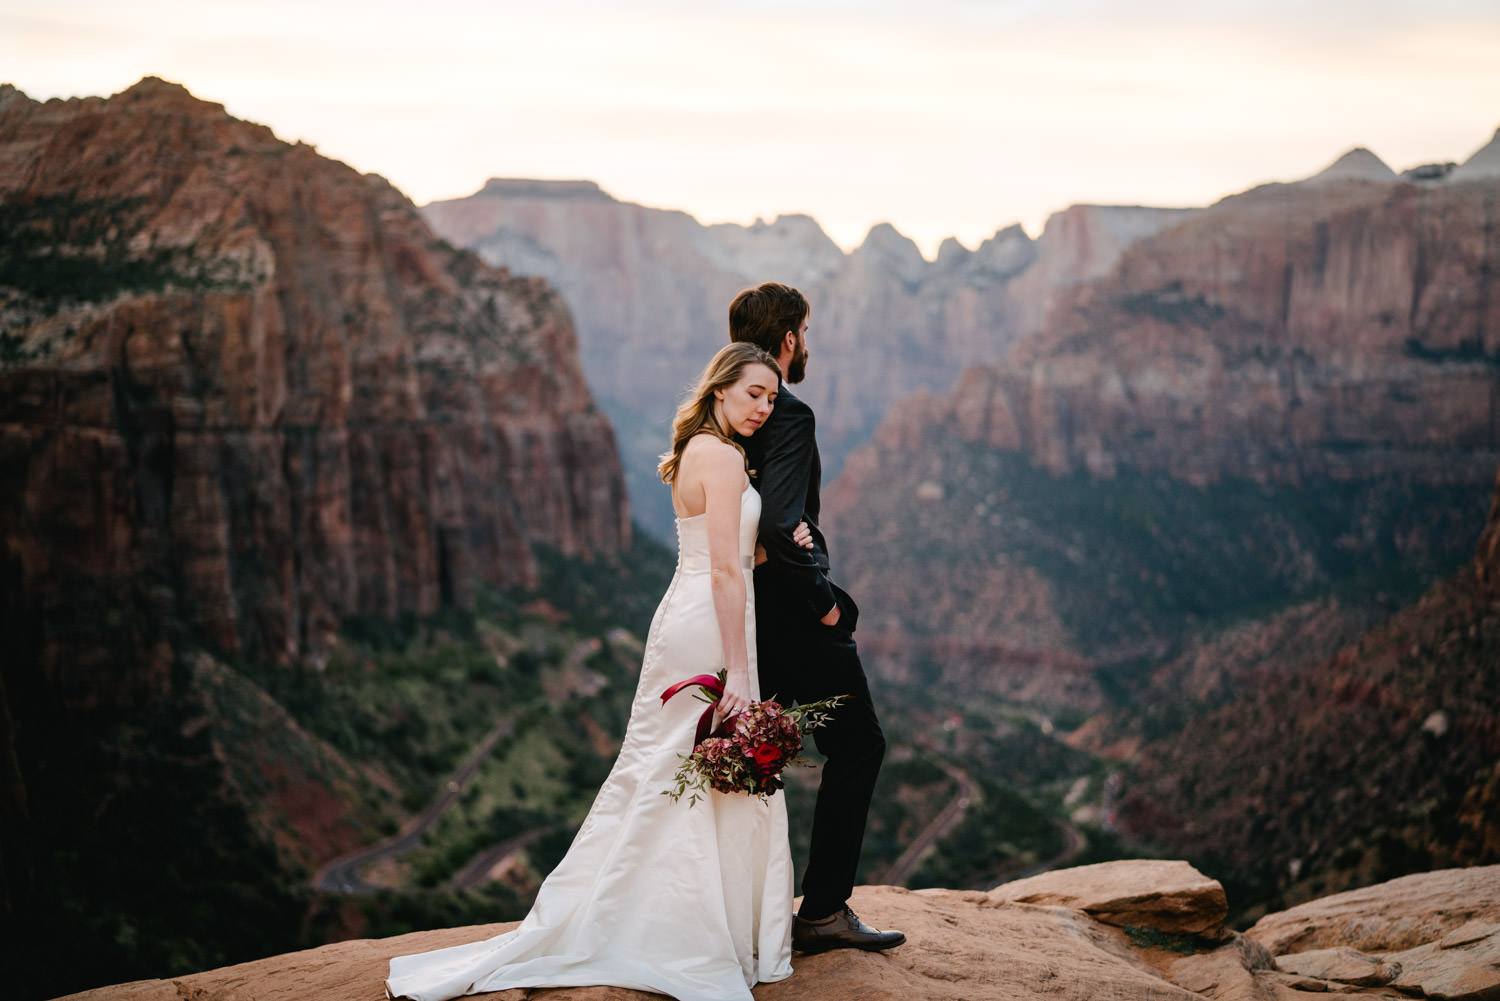 zionnationalpark_utah_destinationweddingphotographer_austendiamondphotography-13